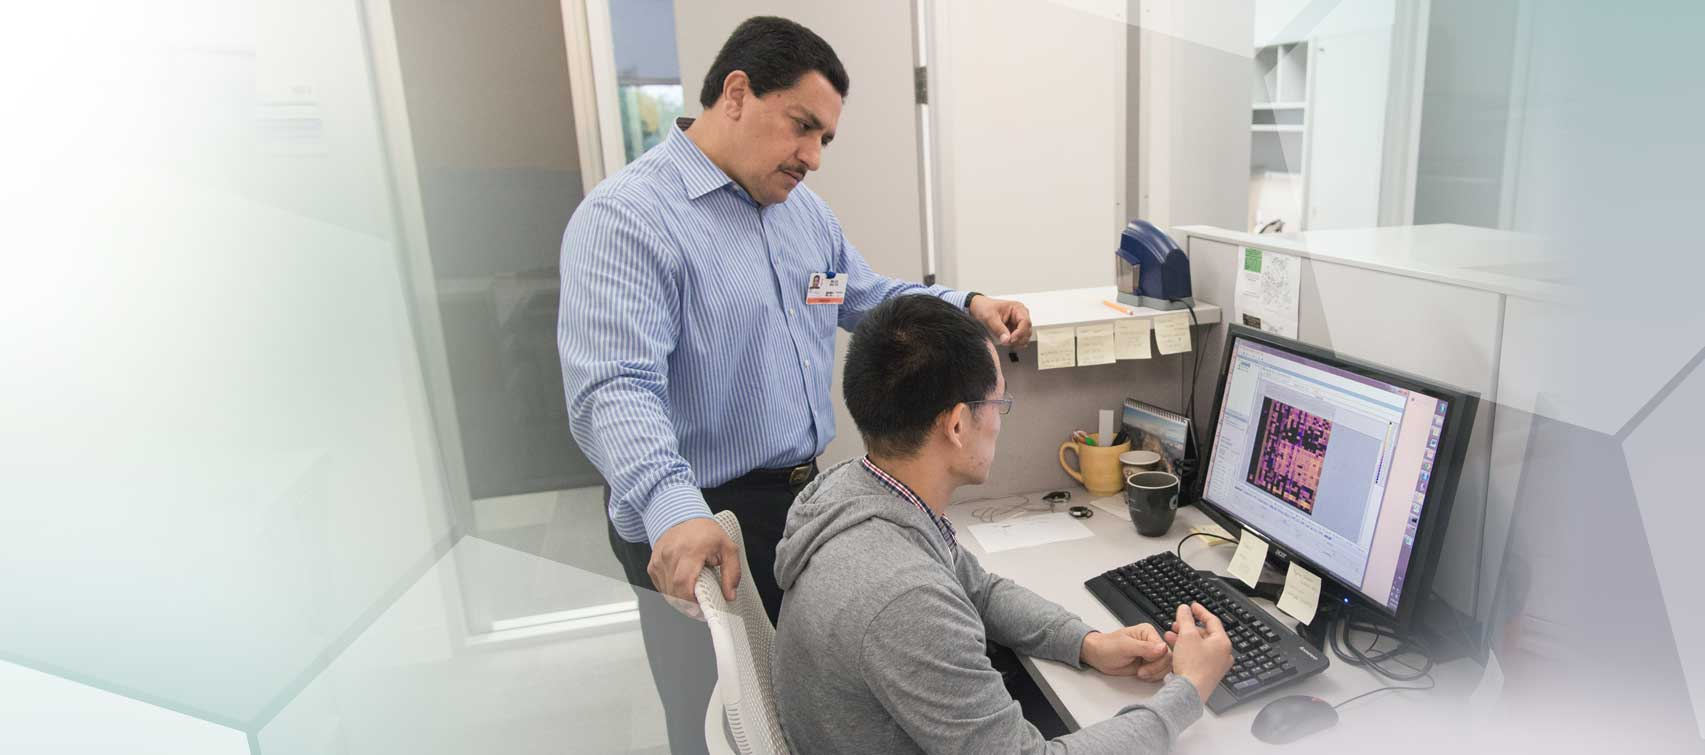 Walter Mejia manages the South Texas Research Facility.